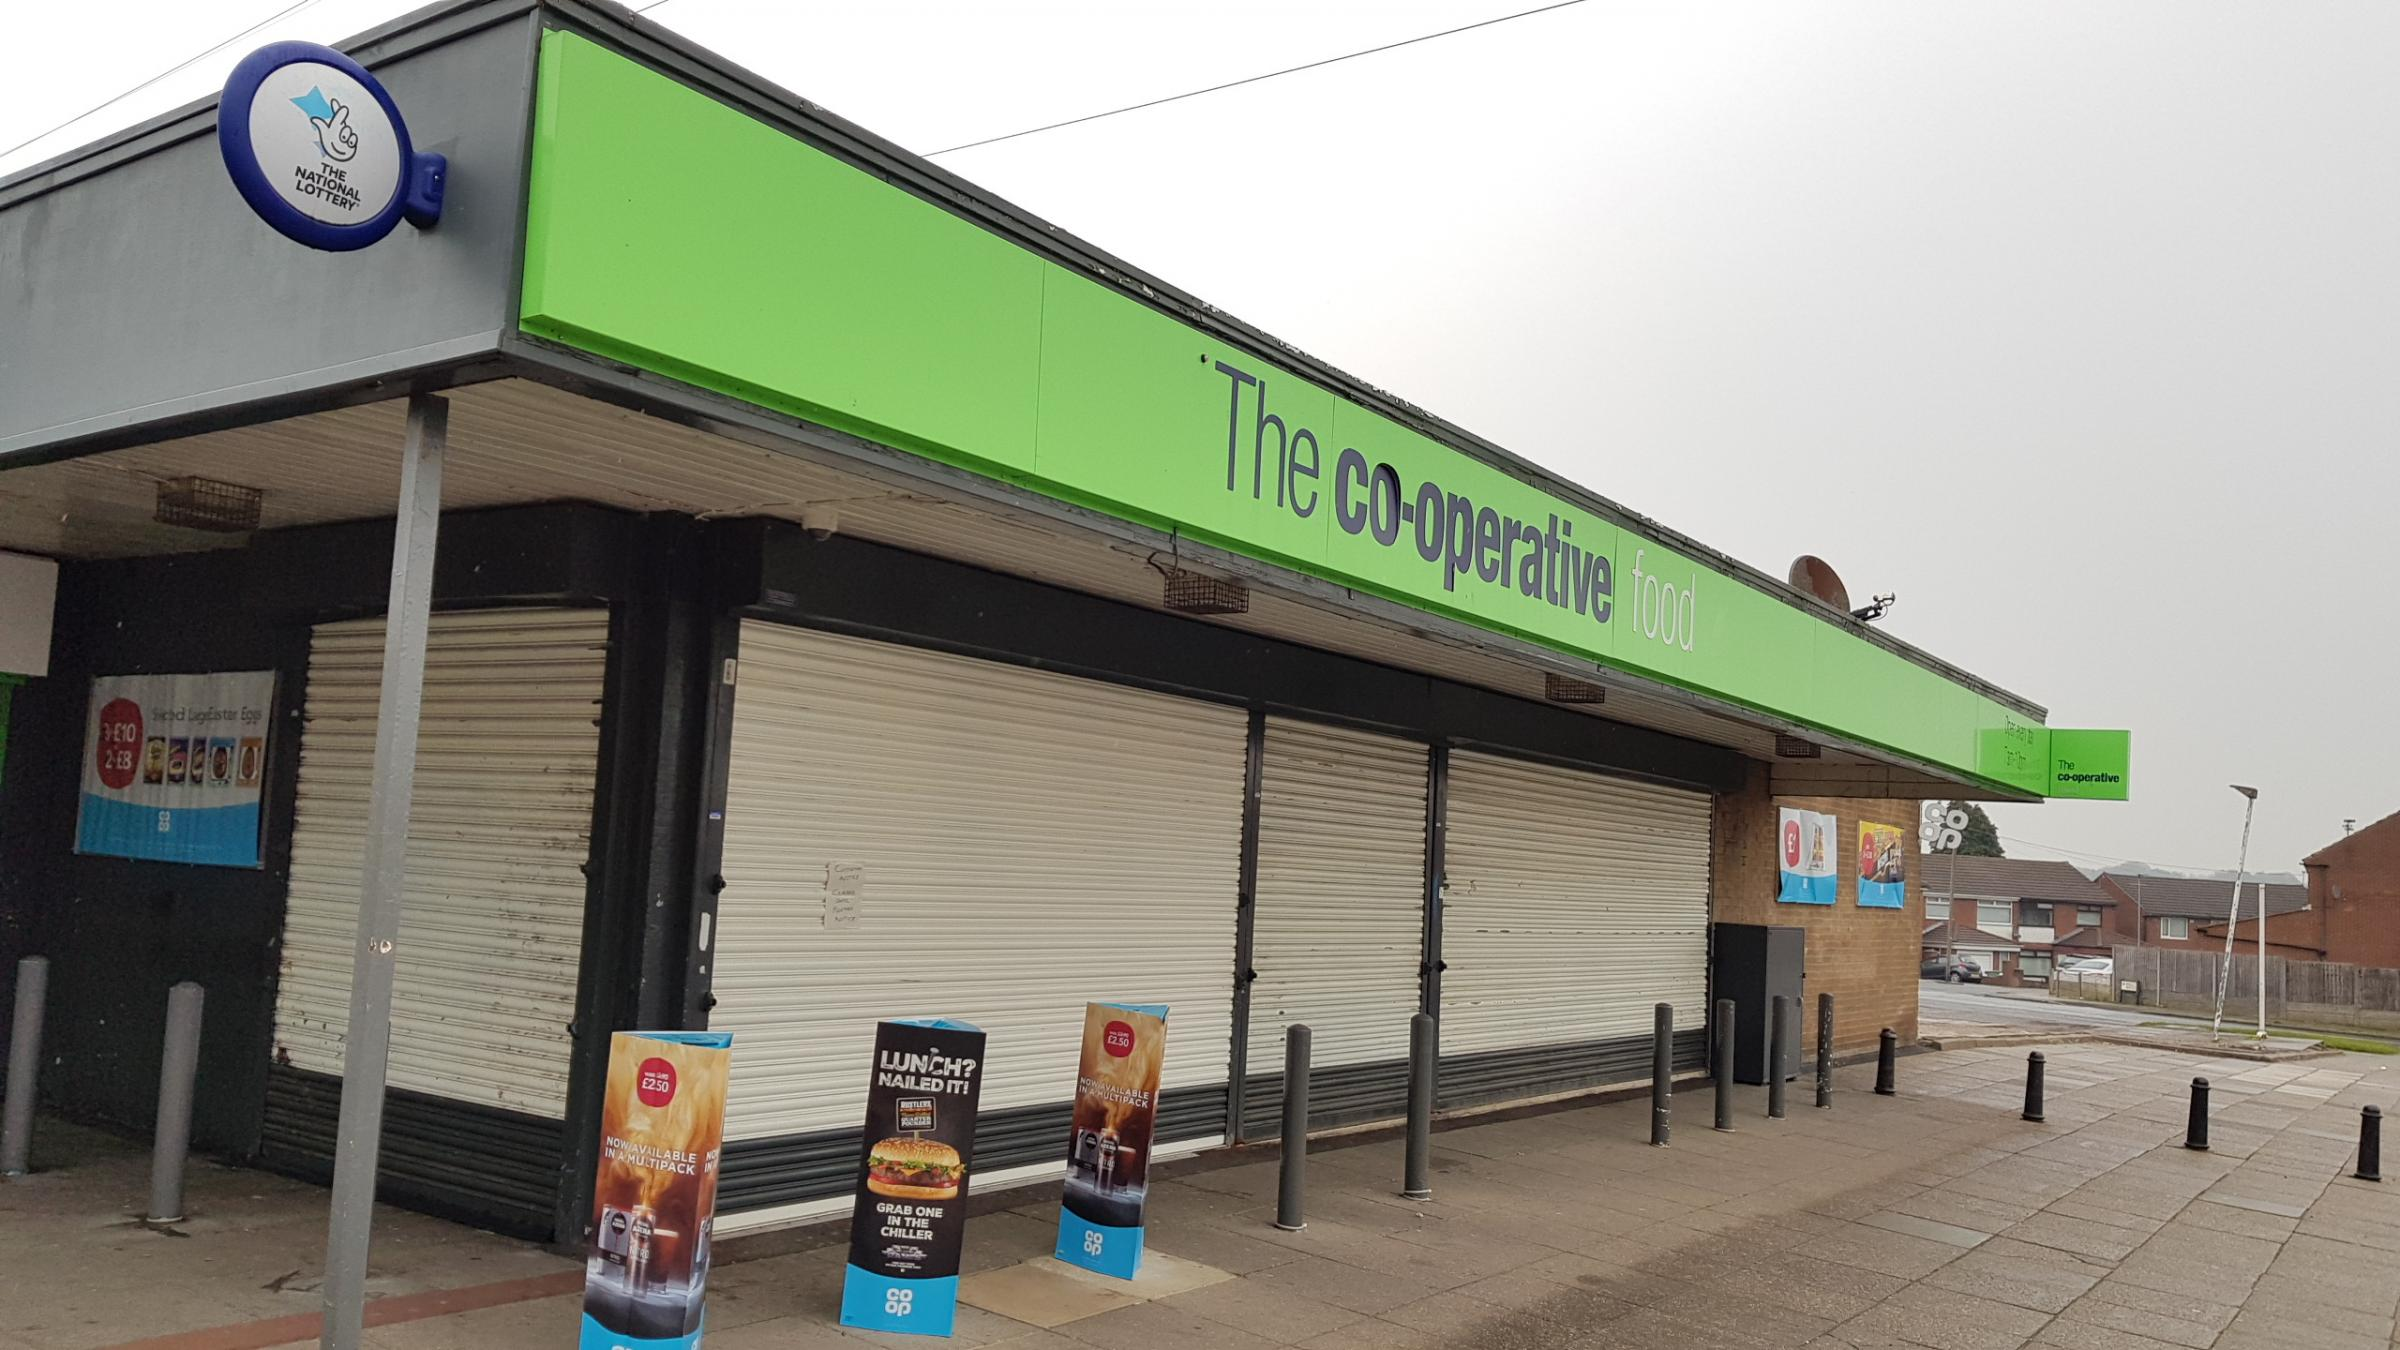 The shutters remained down on the Co-op store at Chain Lane after burglars struck on Monday night (pic: Robbob)